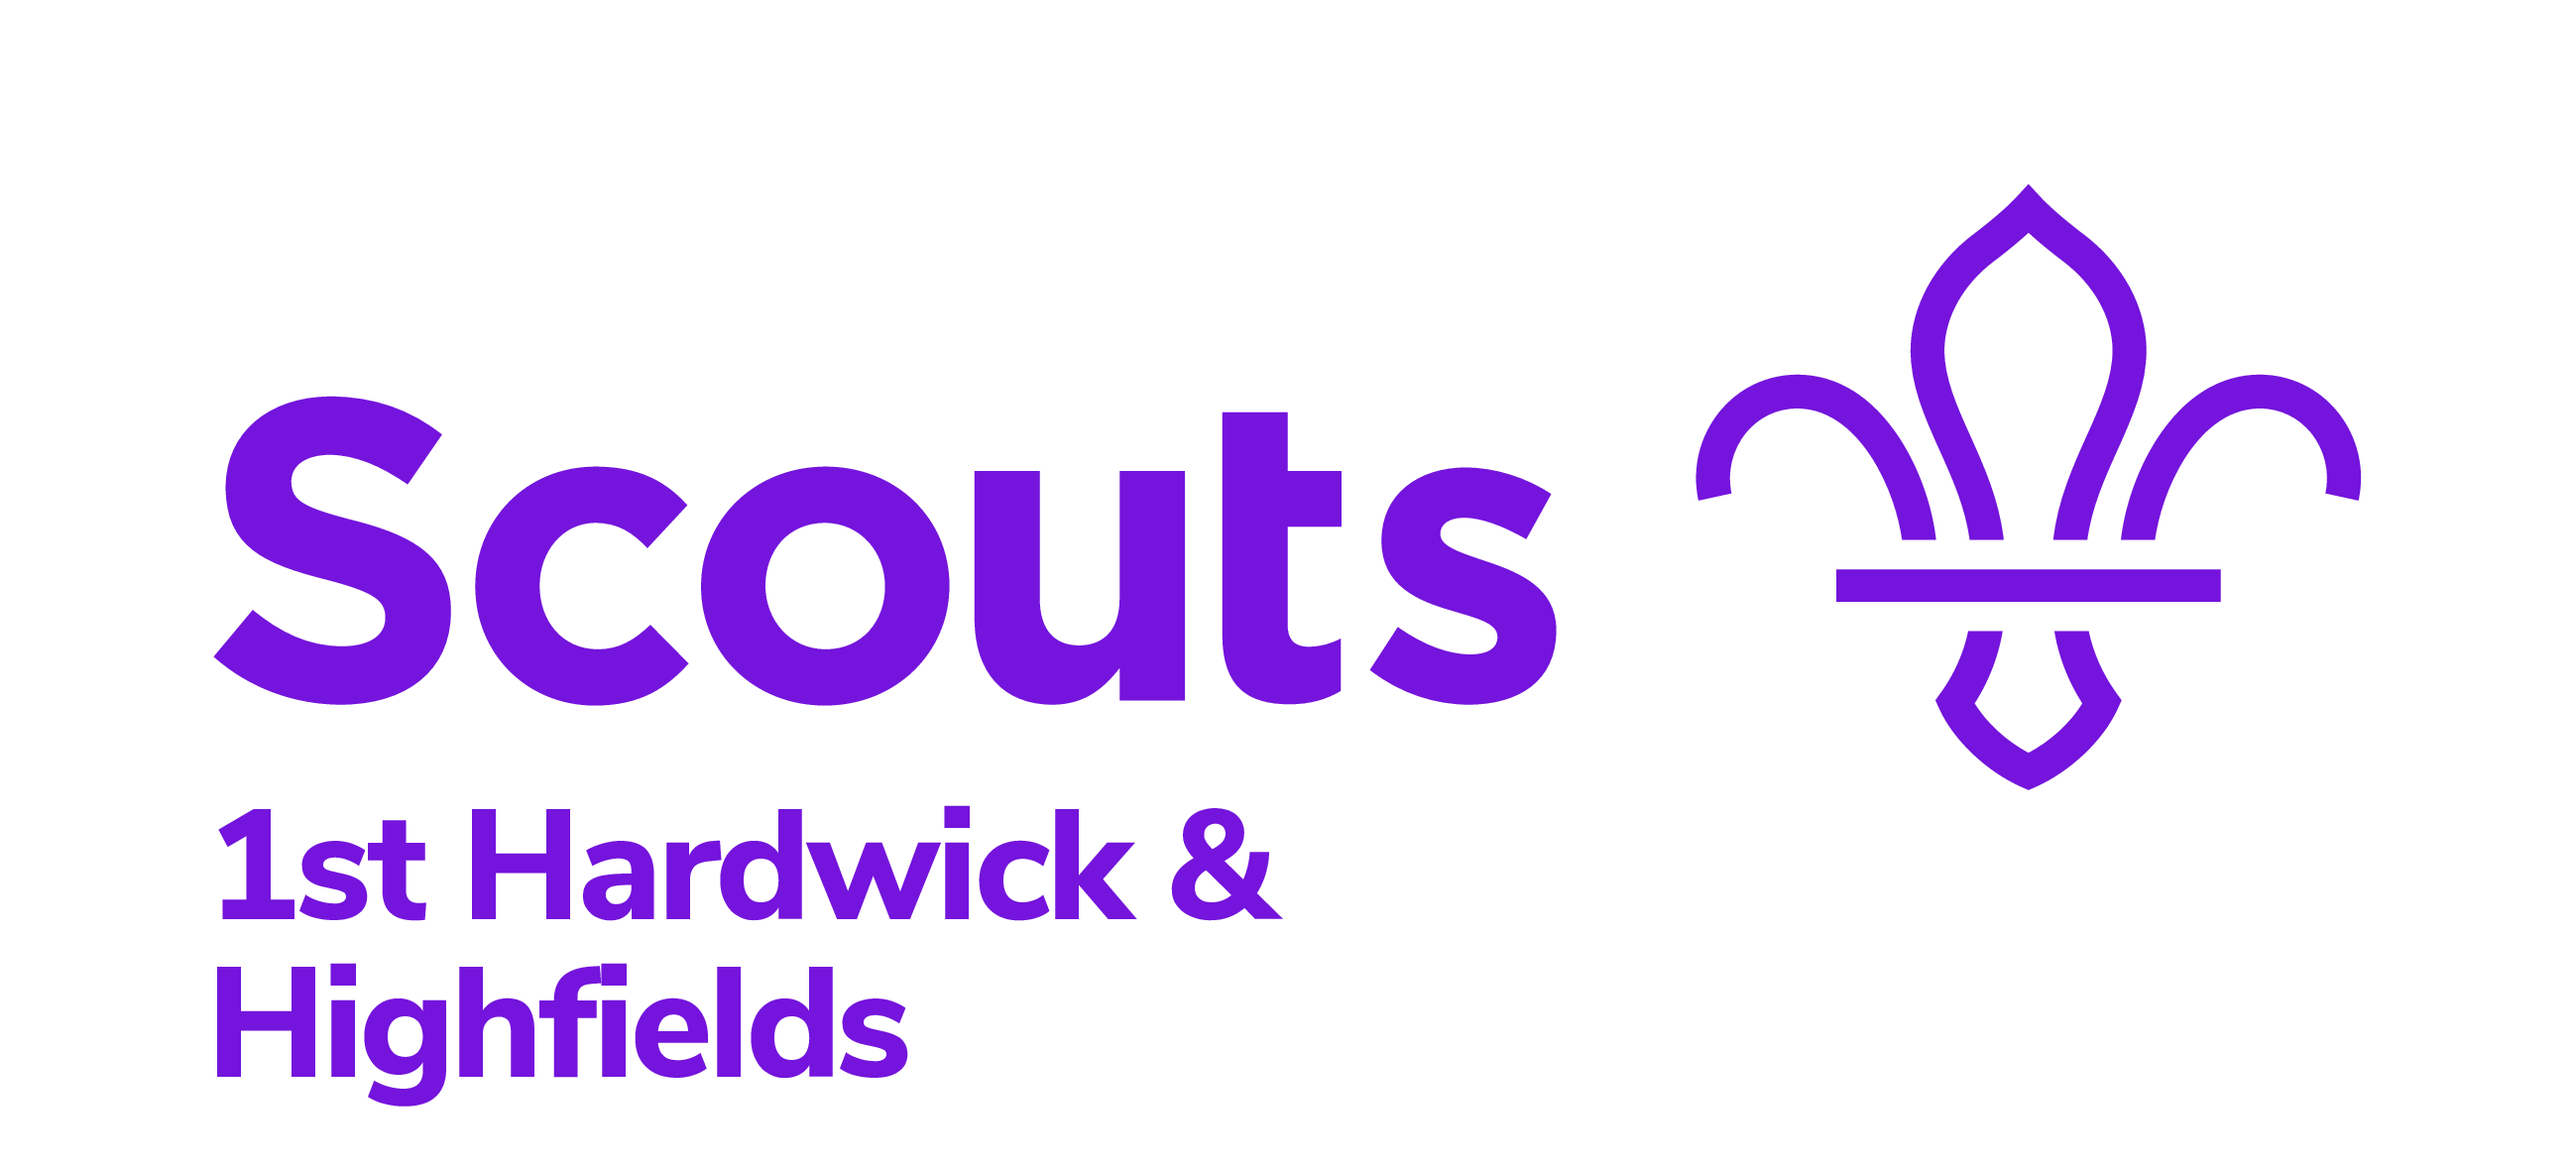 1st Hardwick and Highfields Scout Group